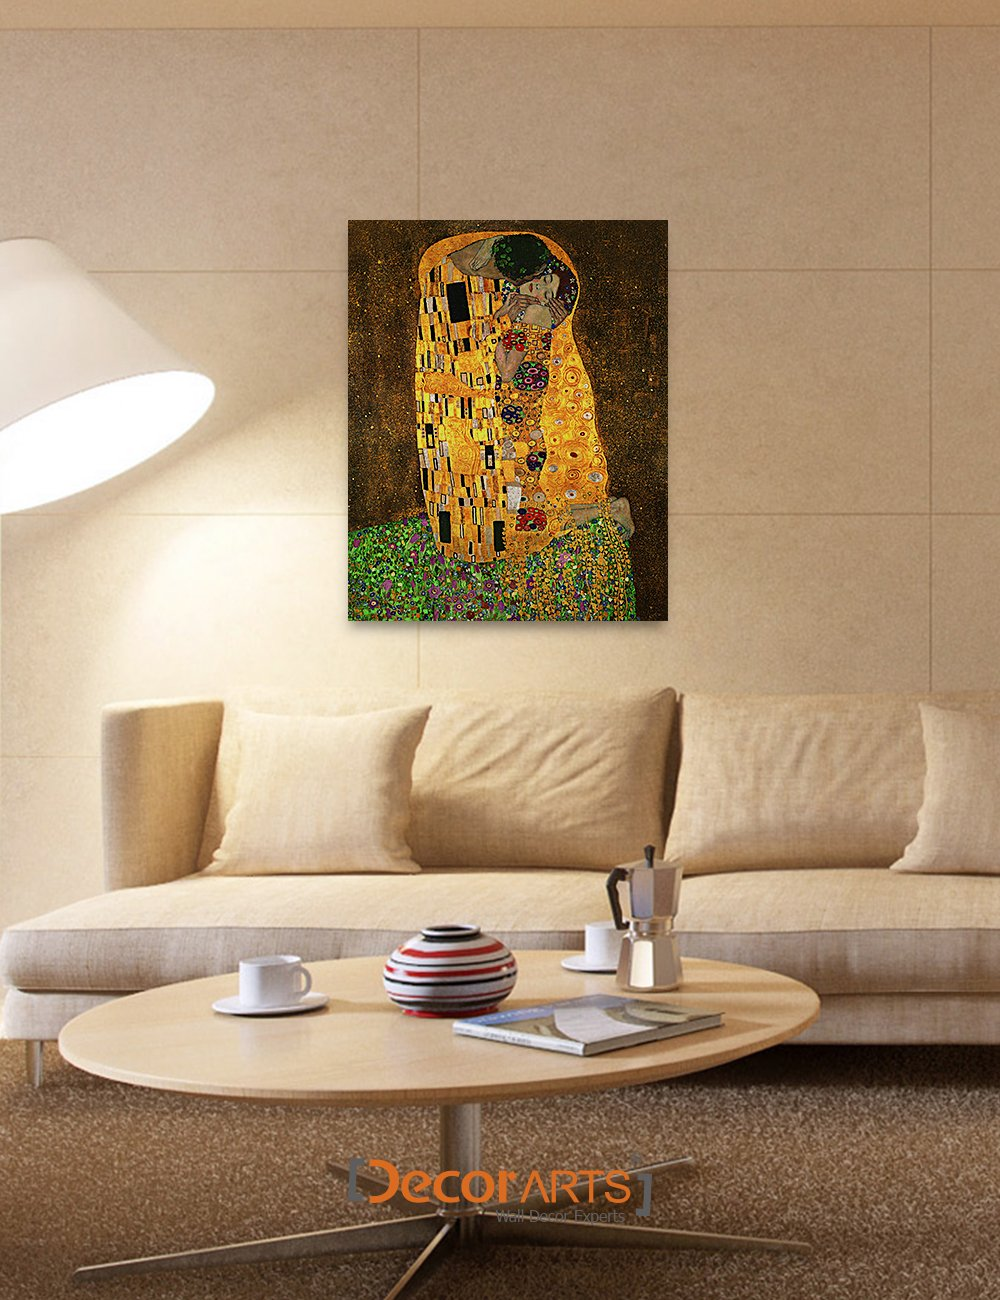 DecorArts printed stretched gallery wrapped Image 2